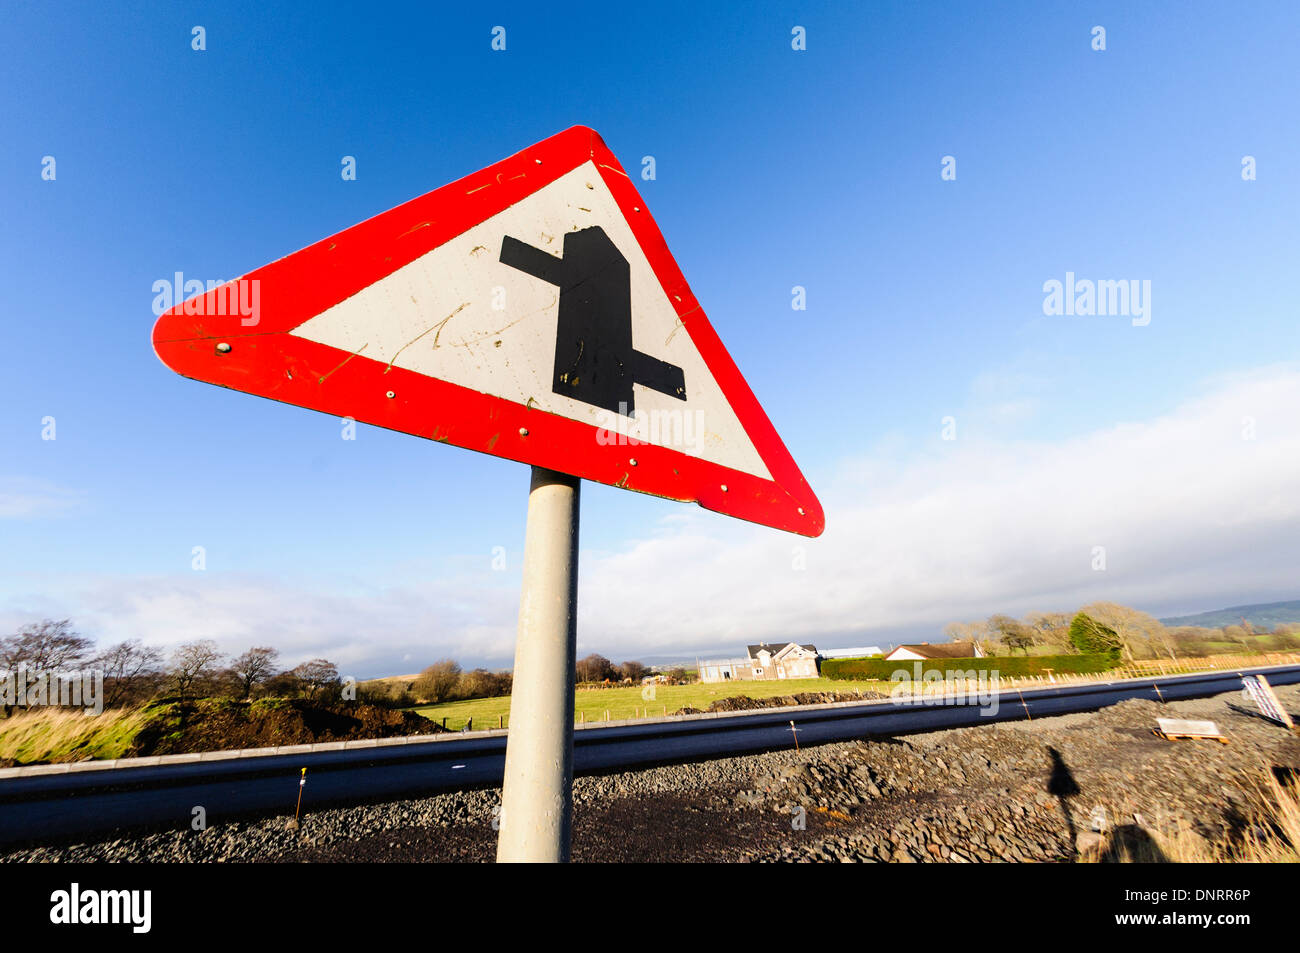 Staggered junction road sign - Stock Image